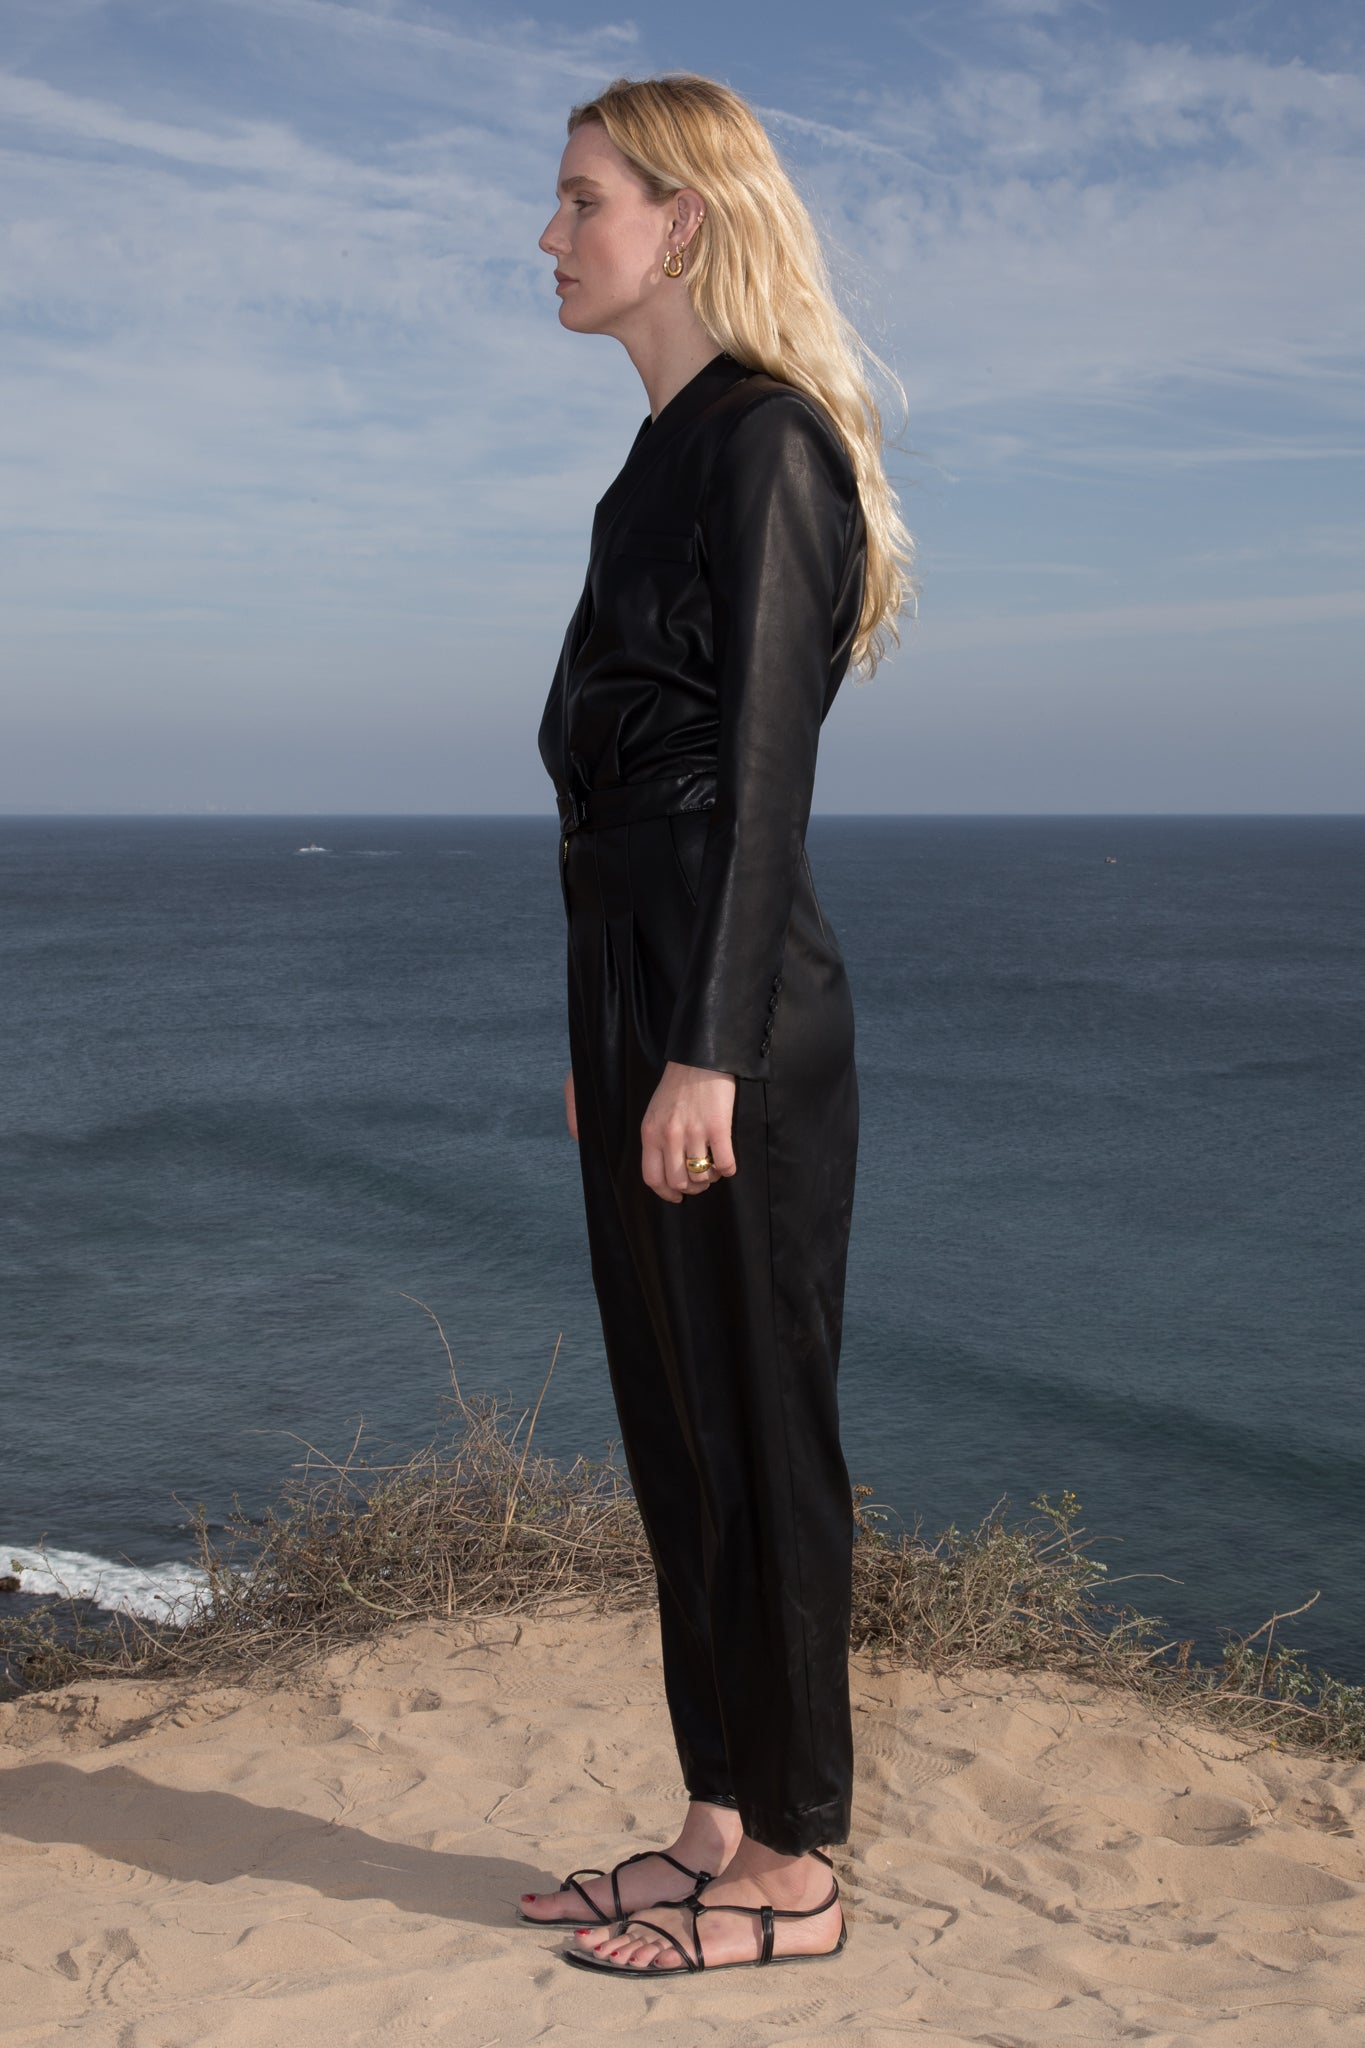 Model wears BLAZER JUMPSUIT - VEGAN LEATHER by Heidi Merrick (Side)